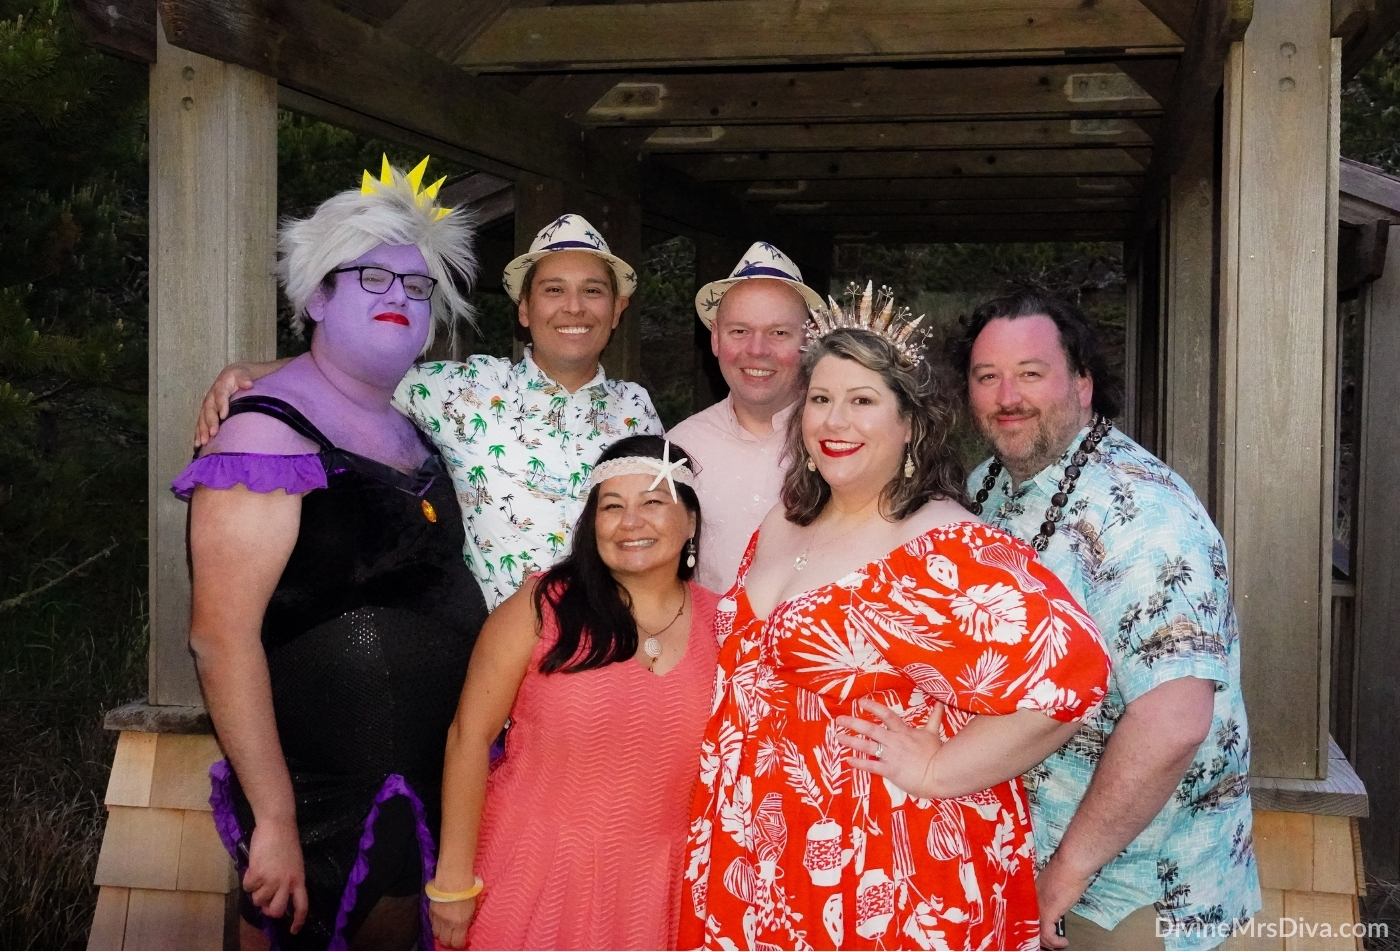 Hailey celebrates her birthday with a photoshoot on the beach with friends, ft. Eloquii & DIY Seashell Tiara – DivineMrsDiva.com  #psblogger #plussizeblogger #styleblogger #plussizefashion #plussize #psootd #ootd #plussizeclothing #outfit #style #Eloquii #XOQ #Mermaid #DIYtiara